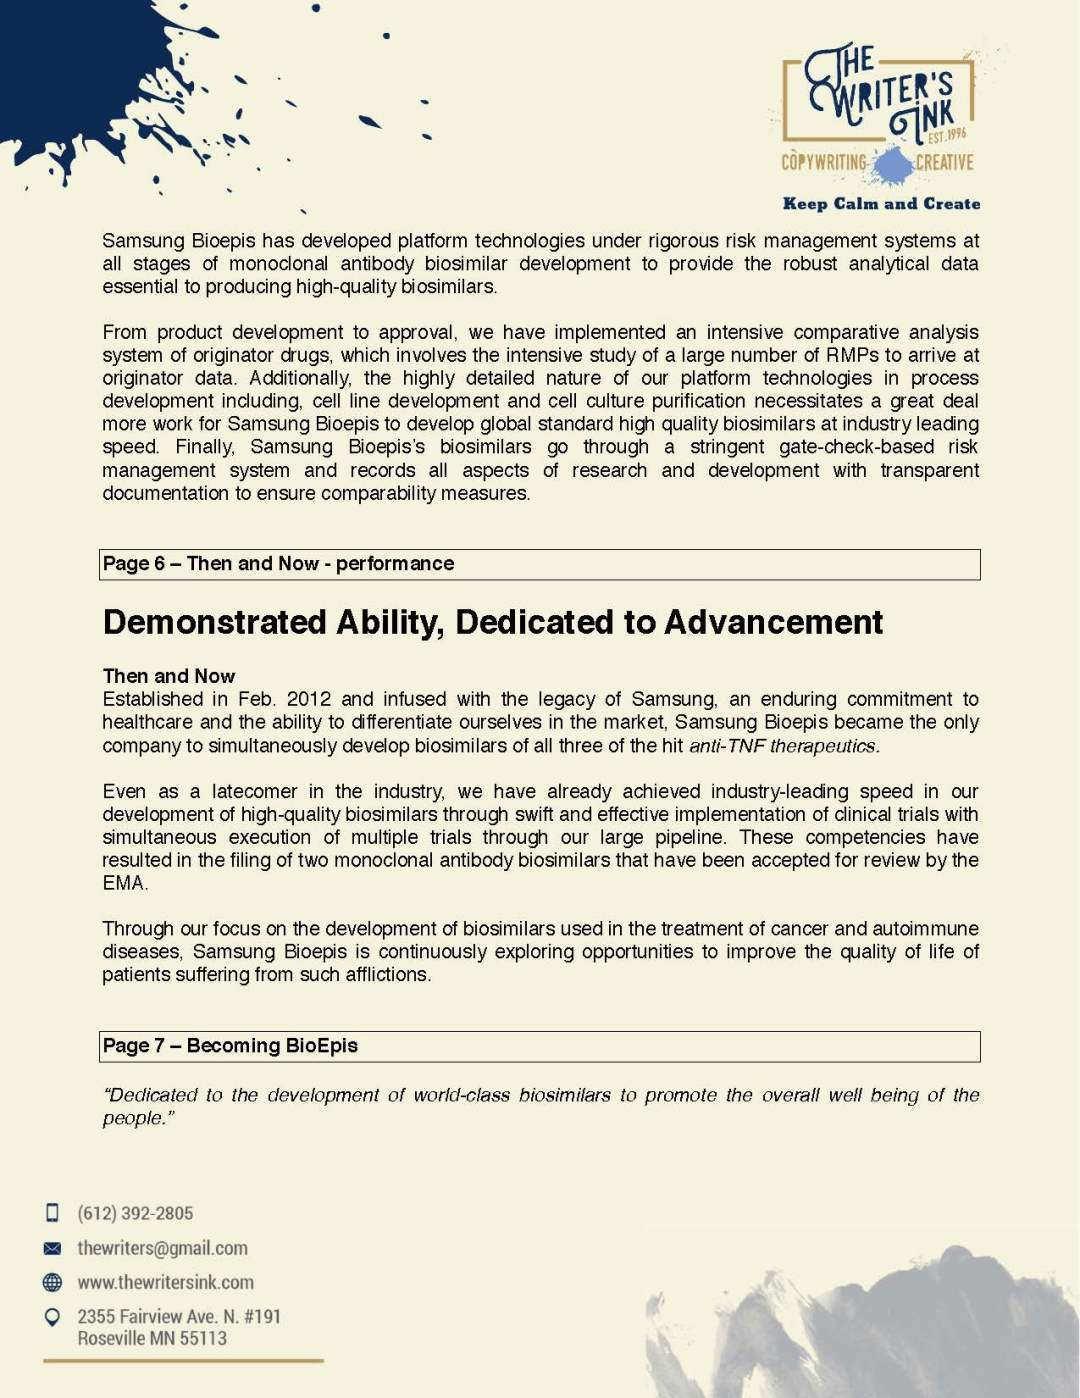 samsung-bioepis_making-a-difference_page_4